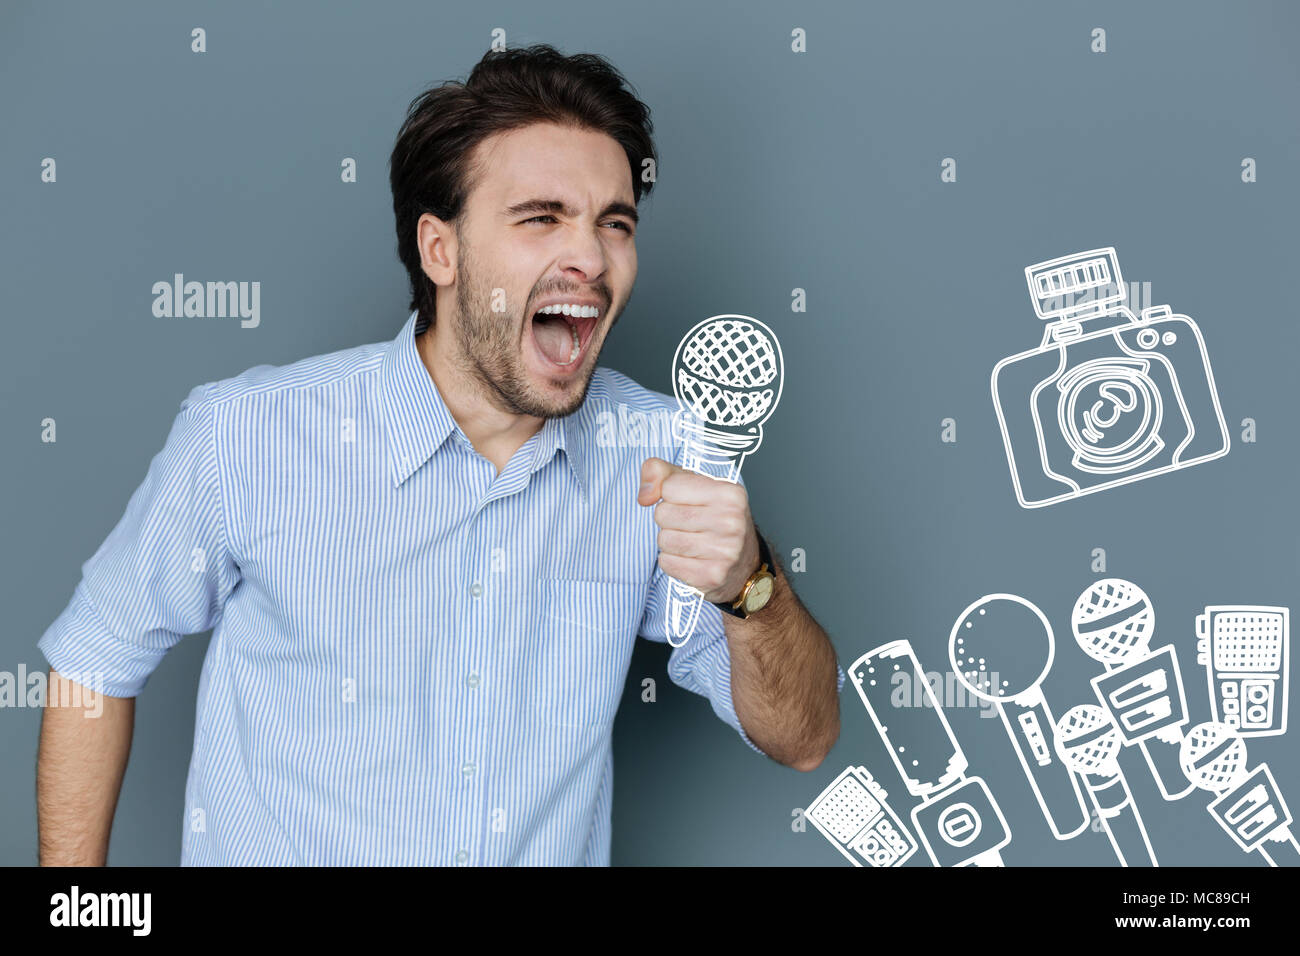 Enthusiastic singer holding a microphone and singing loudly - Stock Image